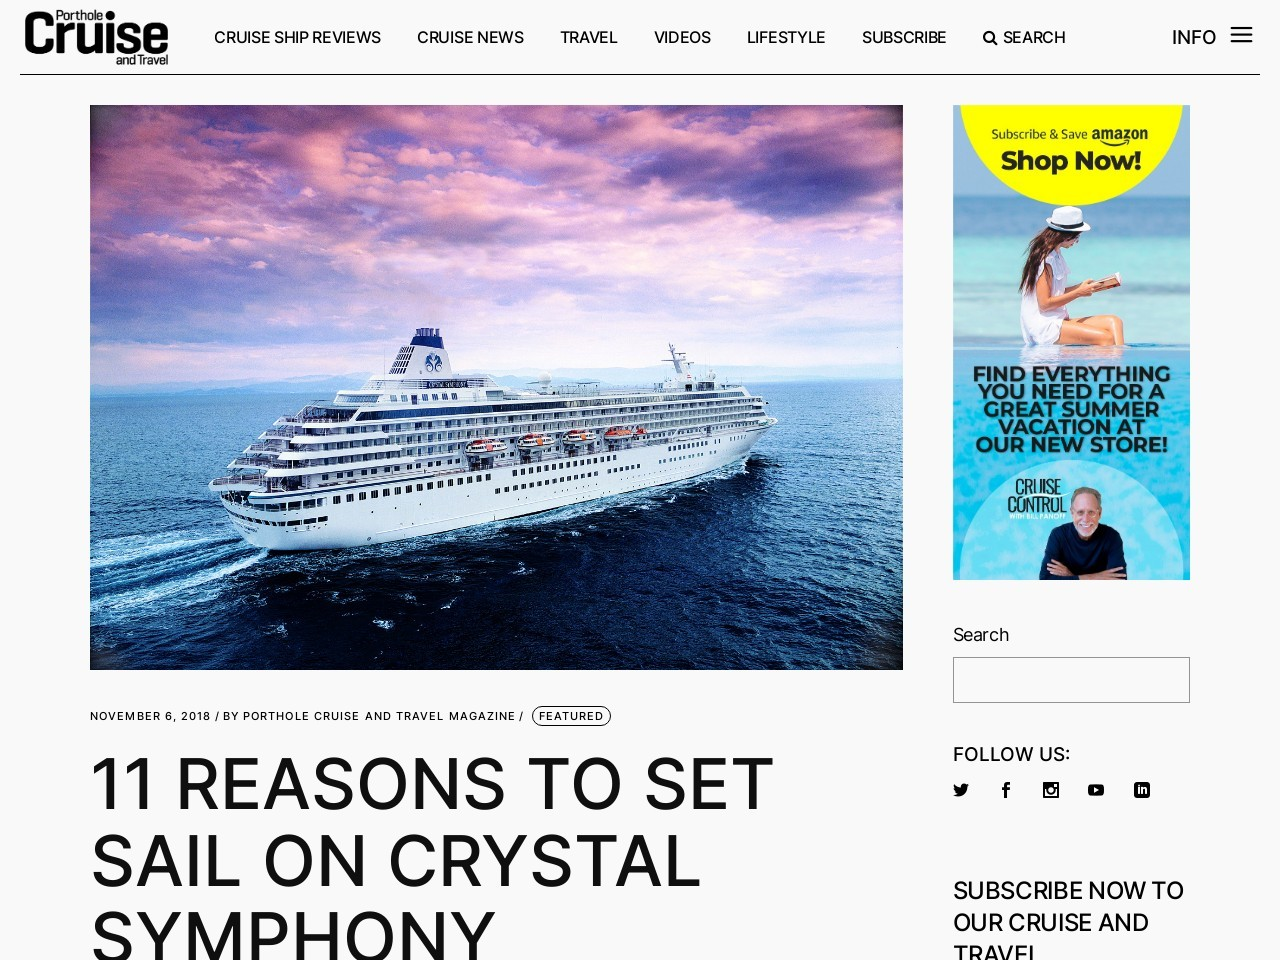 11 Reasons To Set Sail On The Crystal Symphony